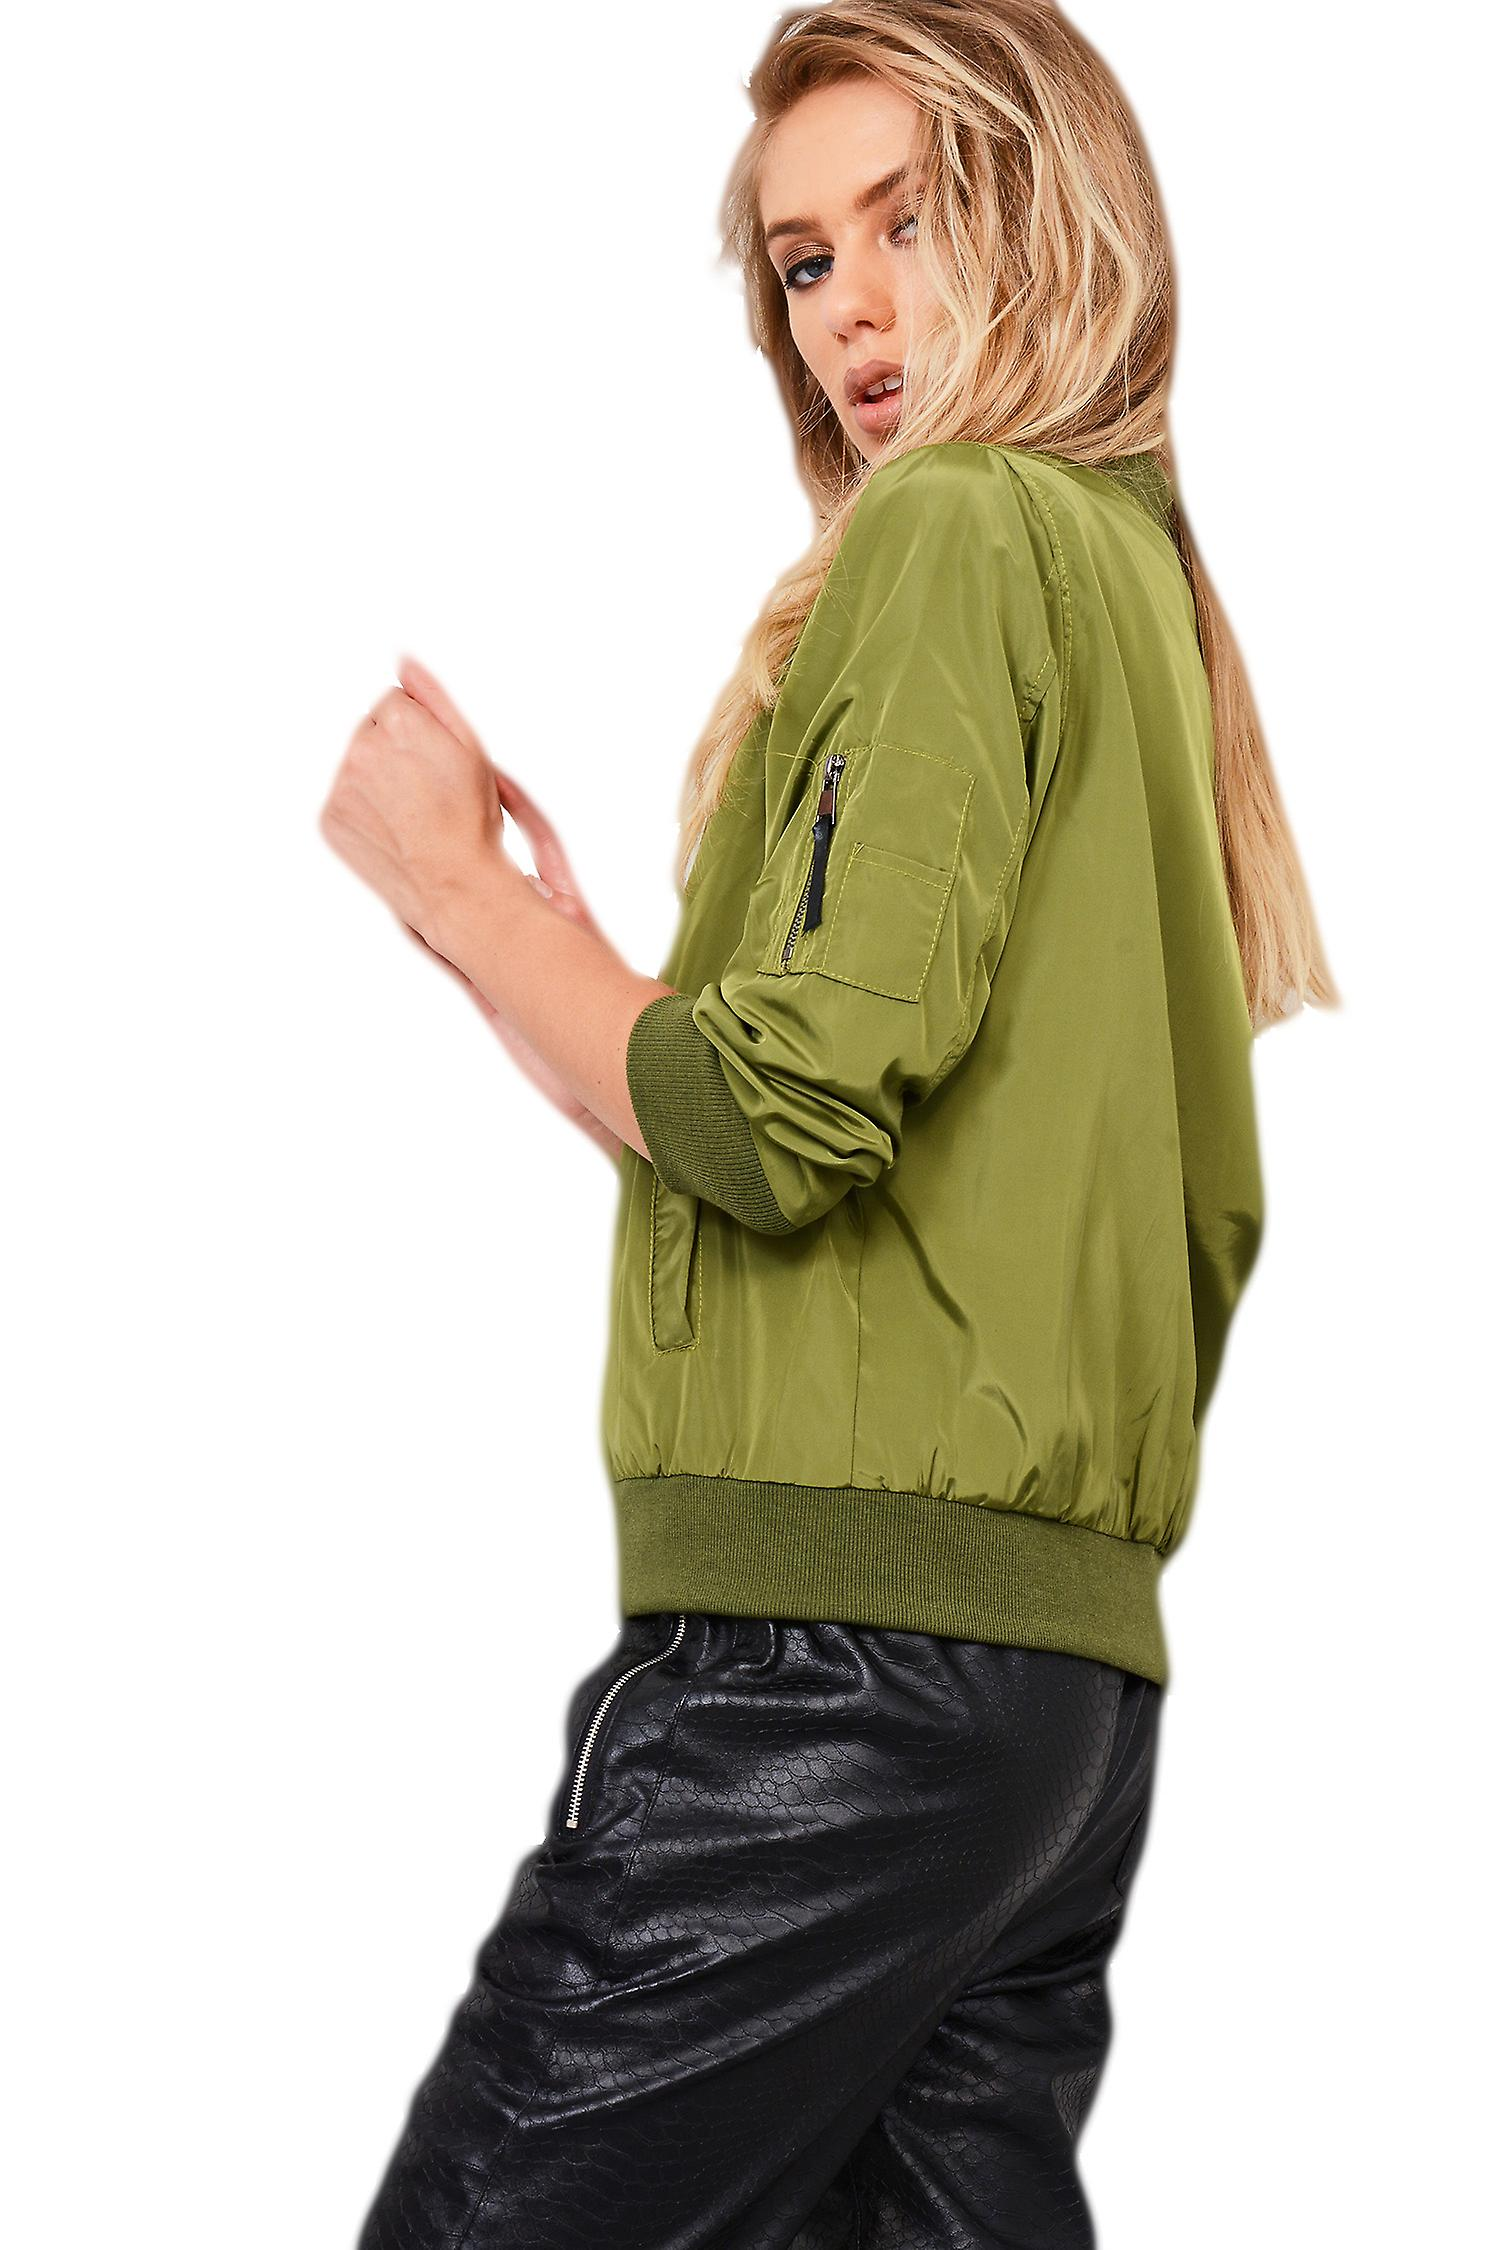 Lovemystyle Casual Green Bomber Jacket Featuring Pockets